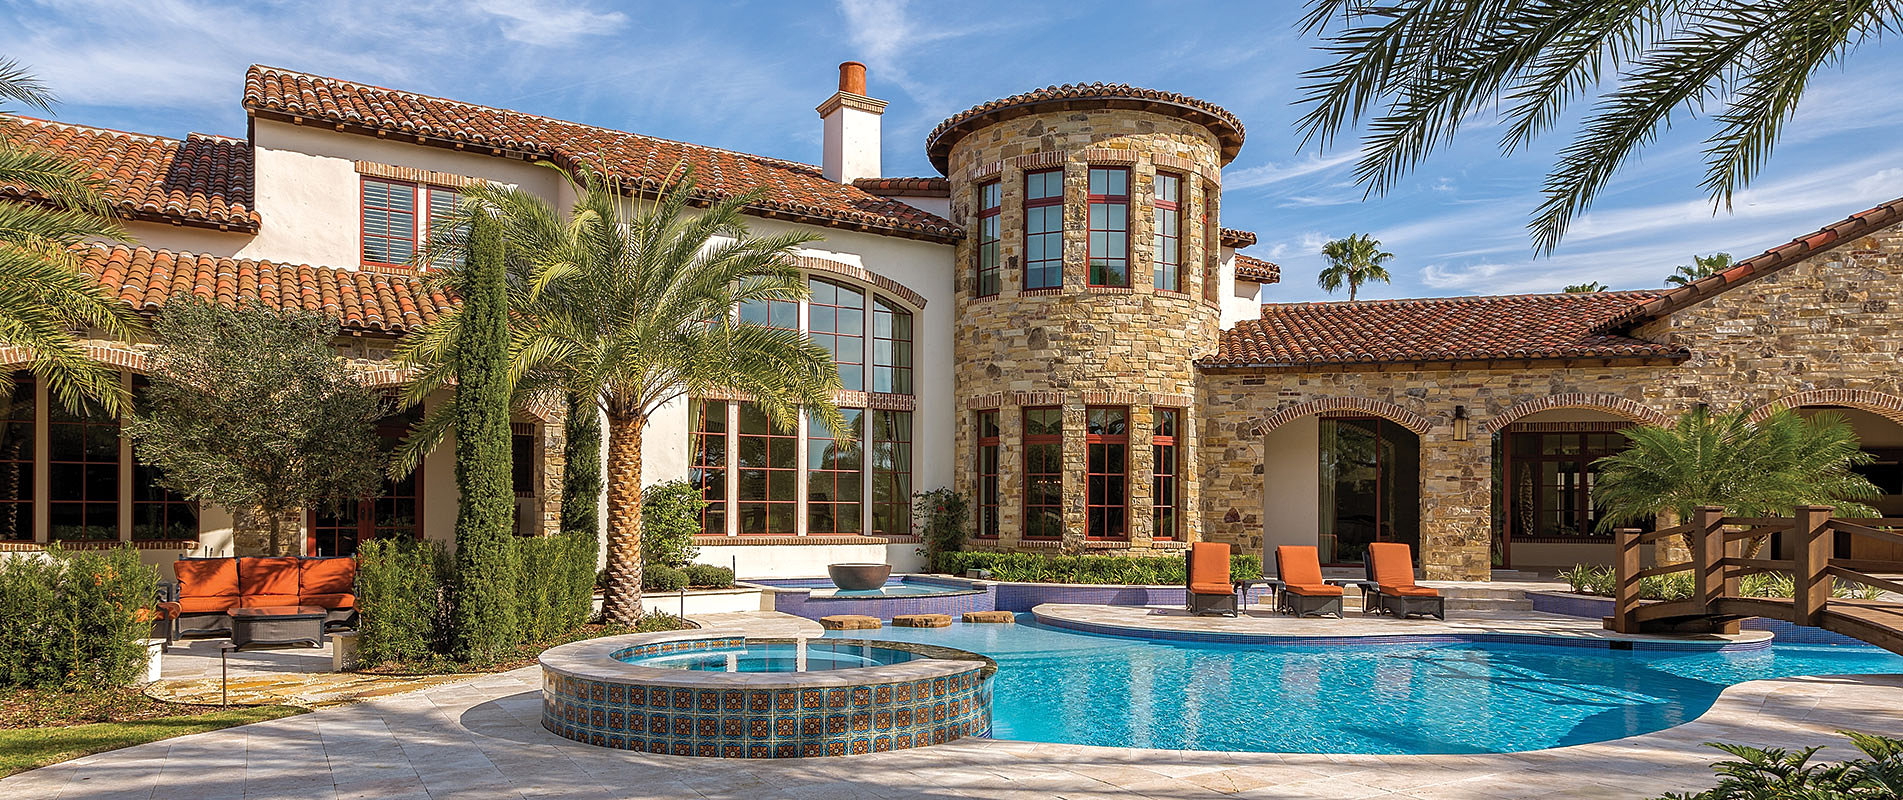 Custom Luxury Pools in Central Florida by Southern Pool Designs